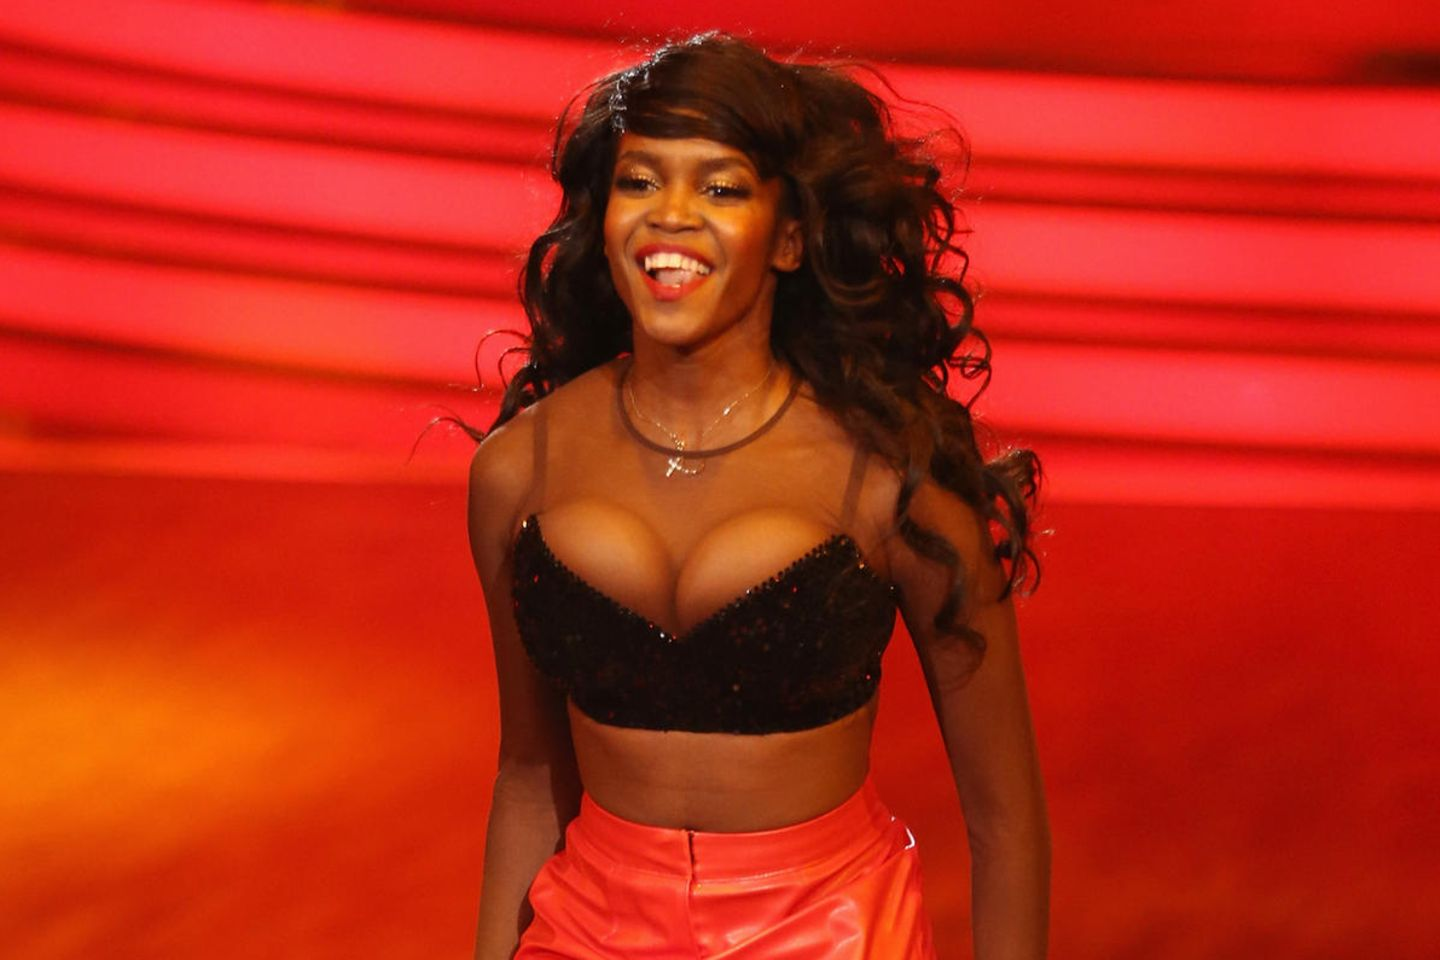 Otlile Mabuse bei Let's Dance 2016